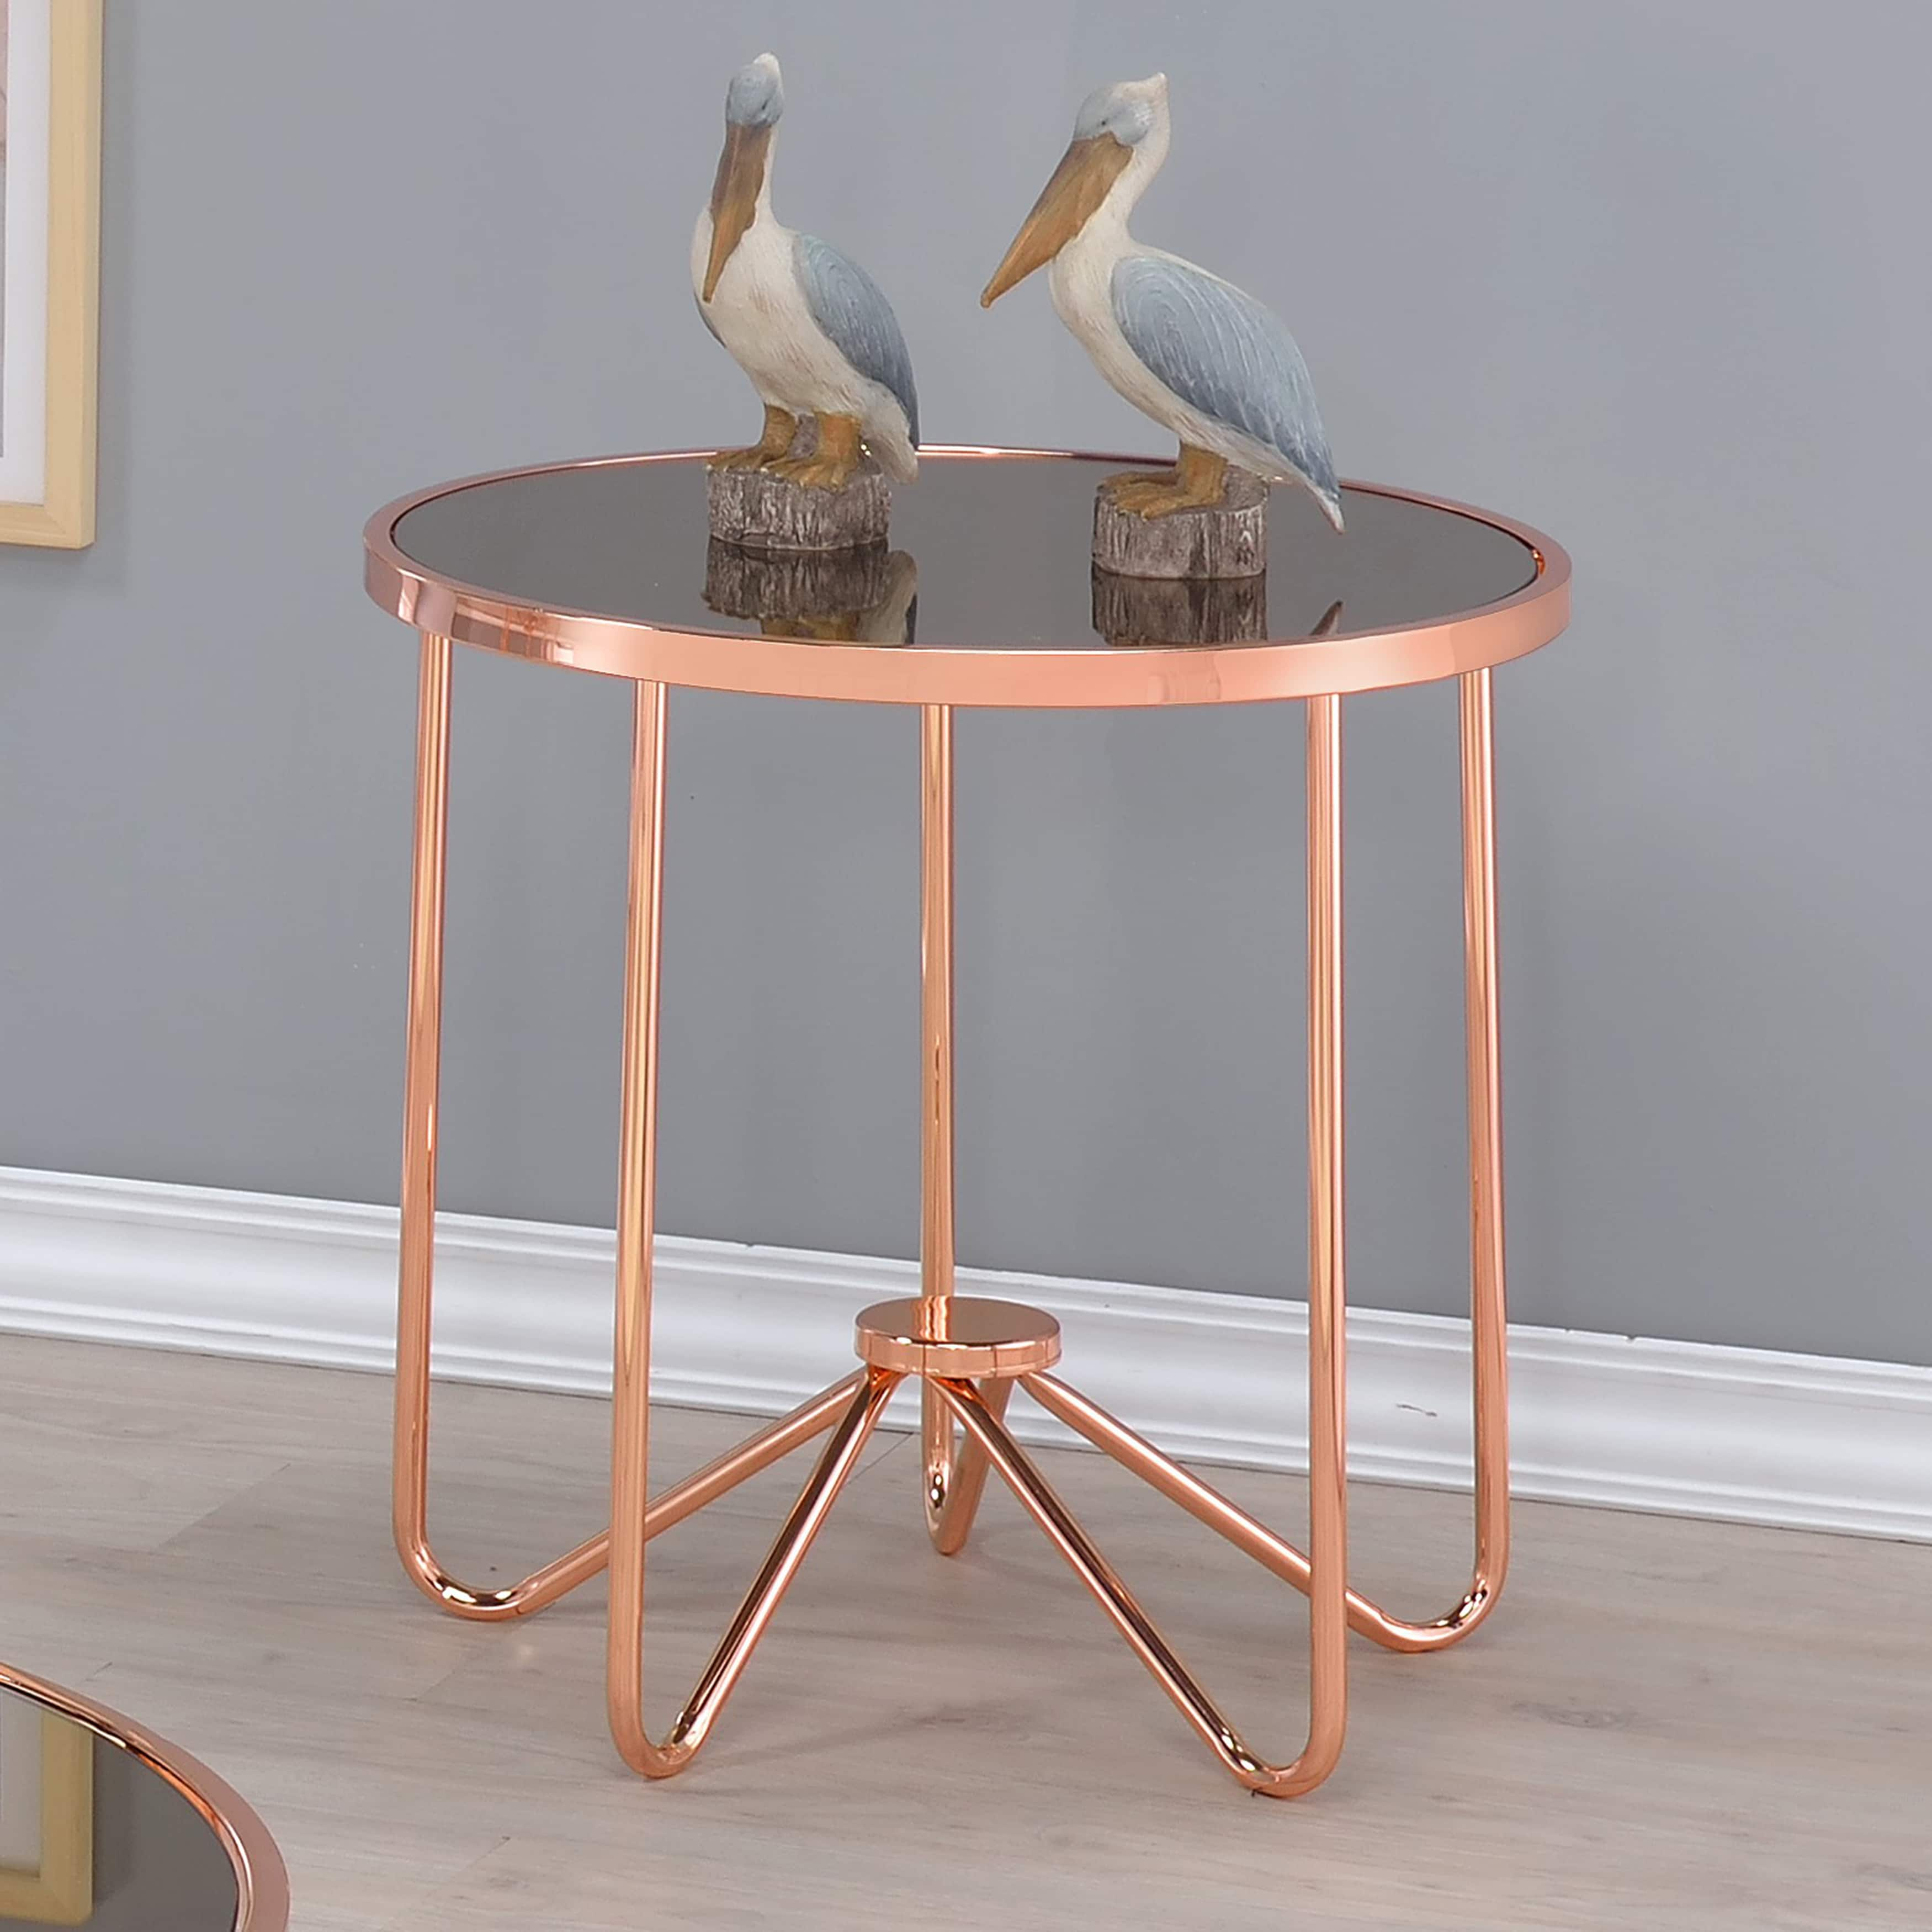 glass accent table small round tables contemporary top cylinder gray vintage crystal lamps nesting side ethan allen bedroom furniture home decorators catalog circle metal coffee